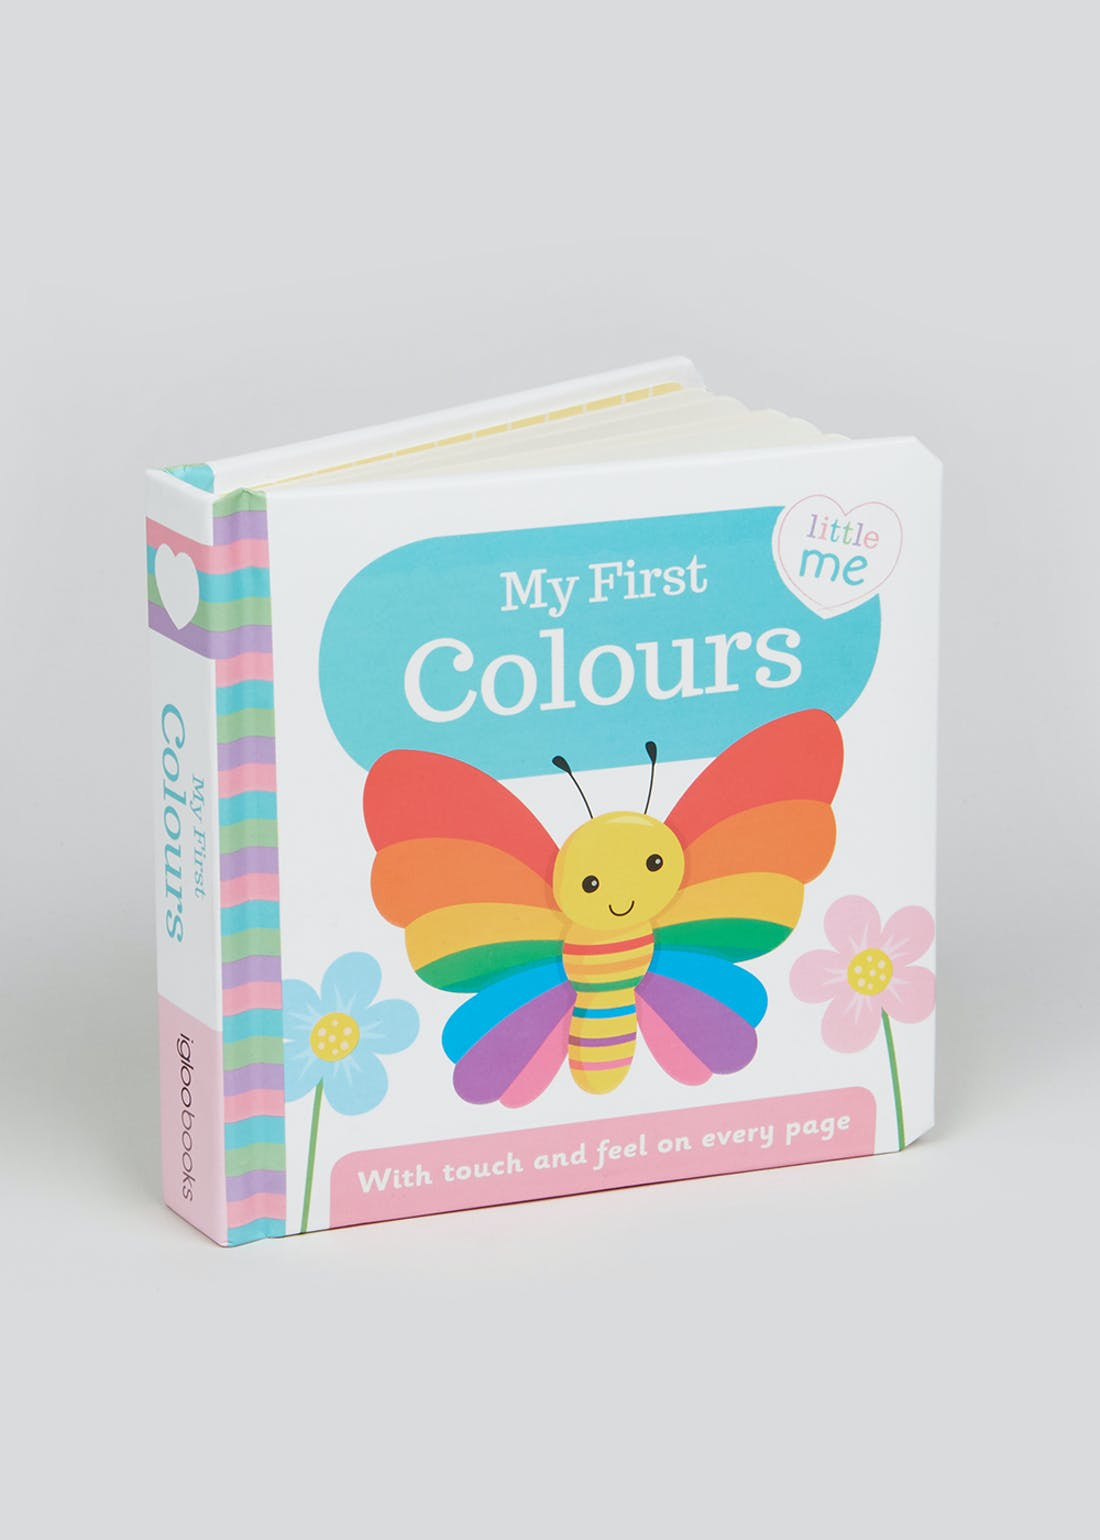 My First Colours Baby Book (14cm x 14cm x 3cm)